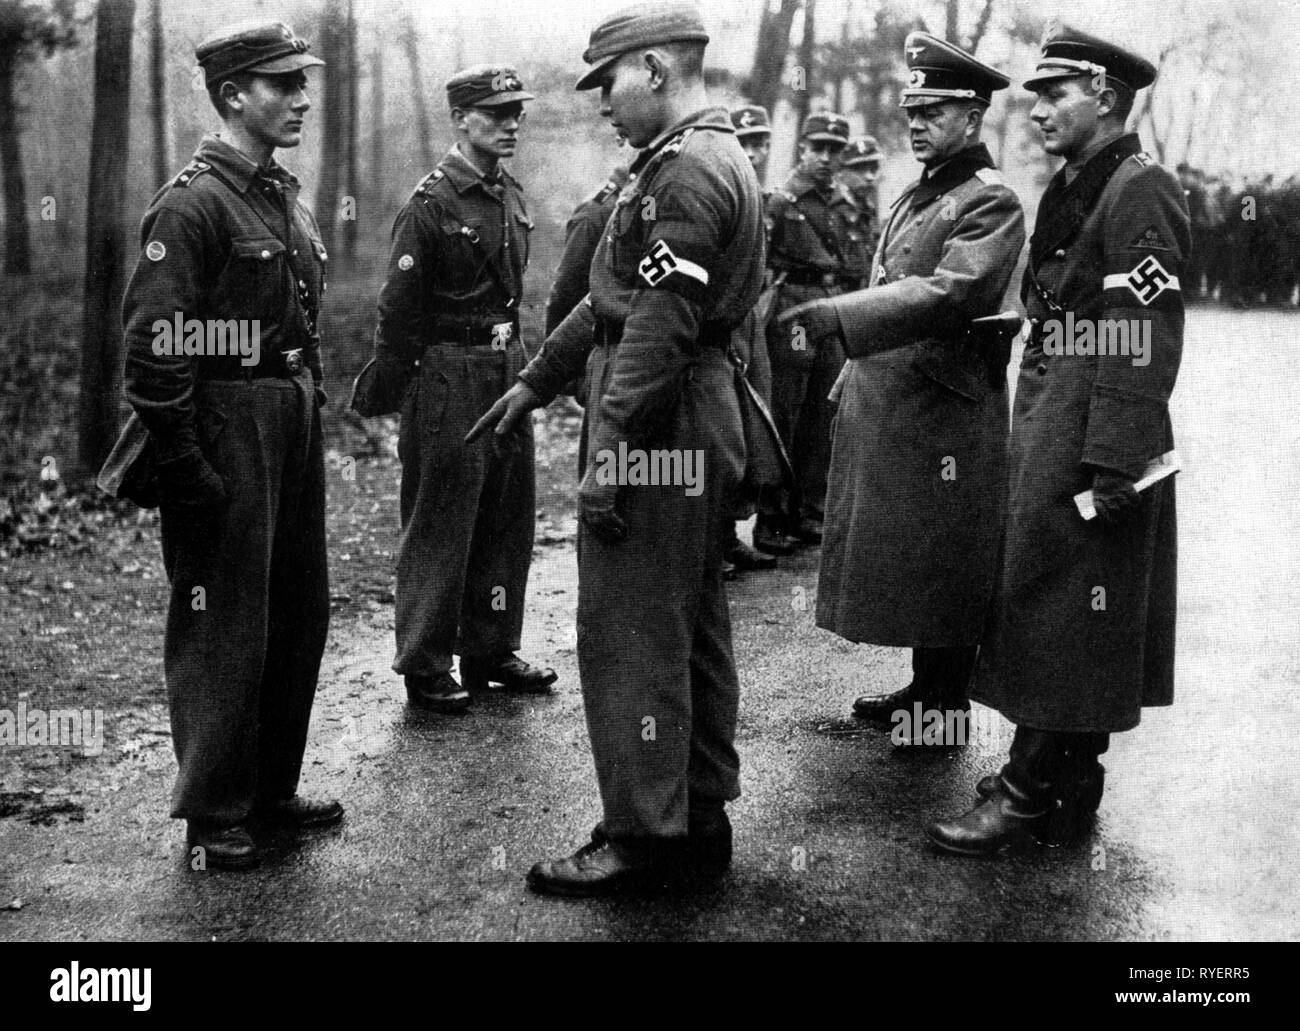 Nazism / National Socialism, organisations, Hitler Youth (HY), Hitler Youth member of the Hitler Youth District Berlin East during paramilitary training, inspection in the presence of an army officer, 1939, Additional-Rights-Clearance-Info-Not-Available - Stock Image